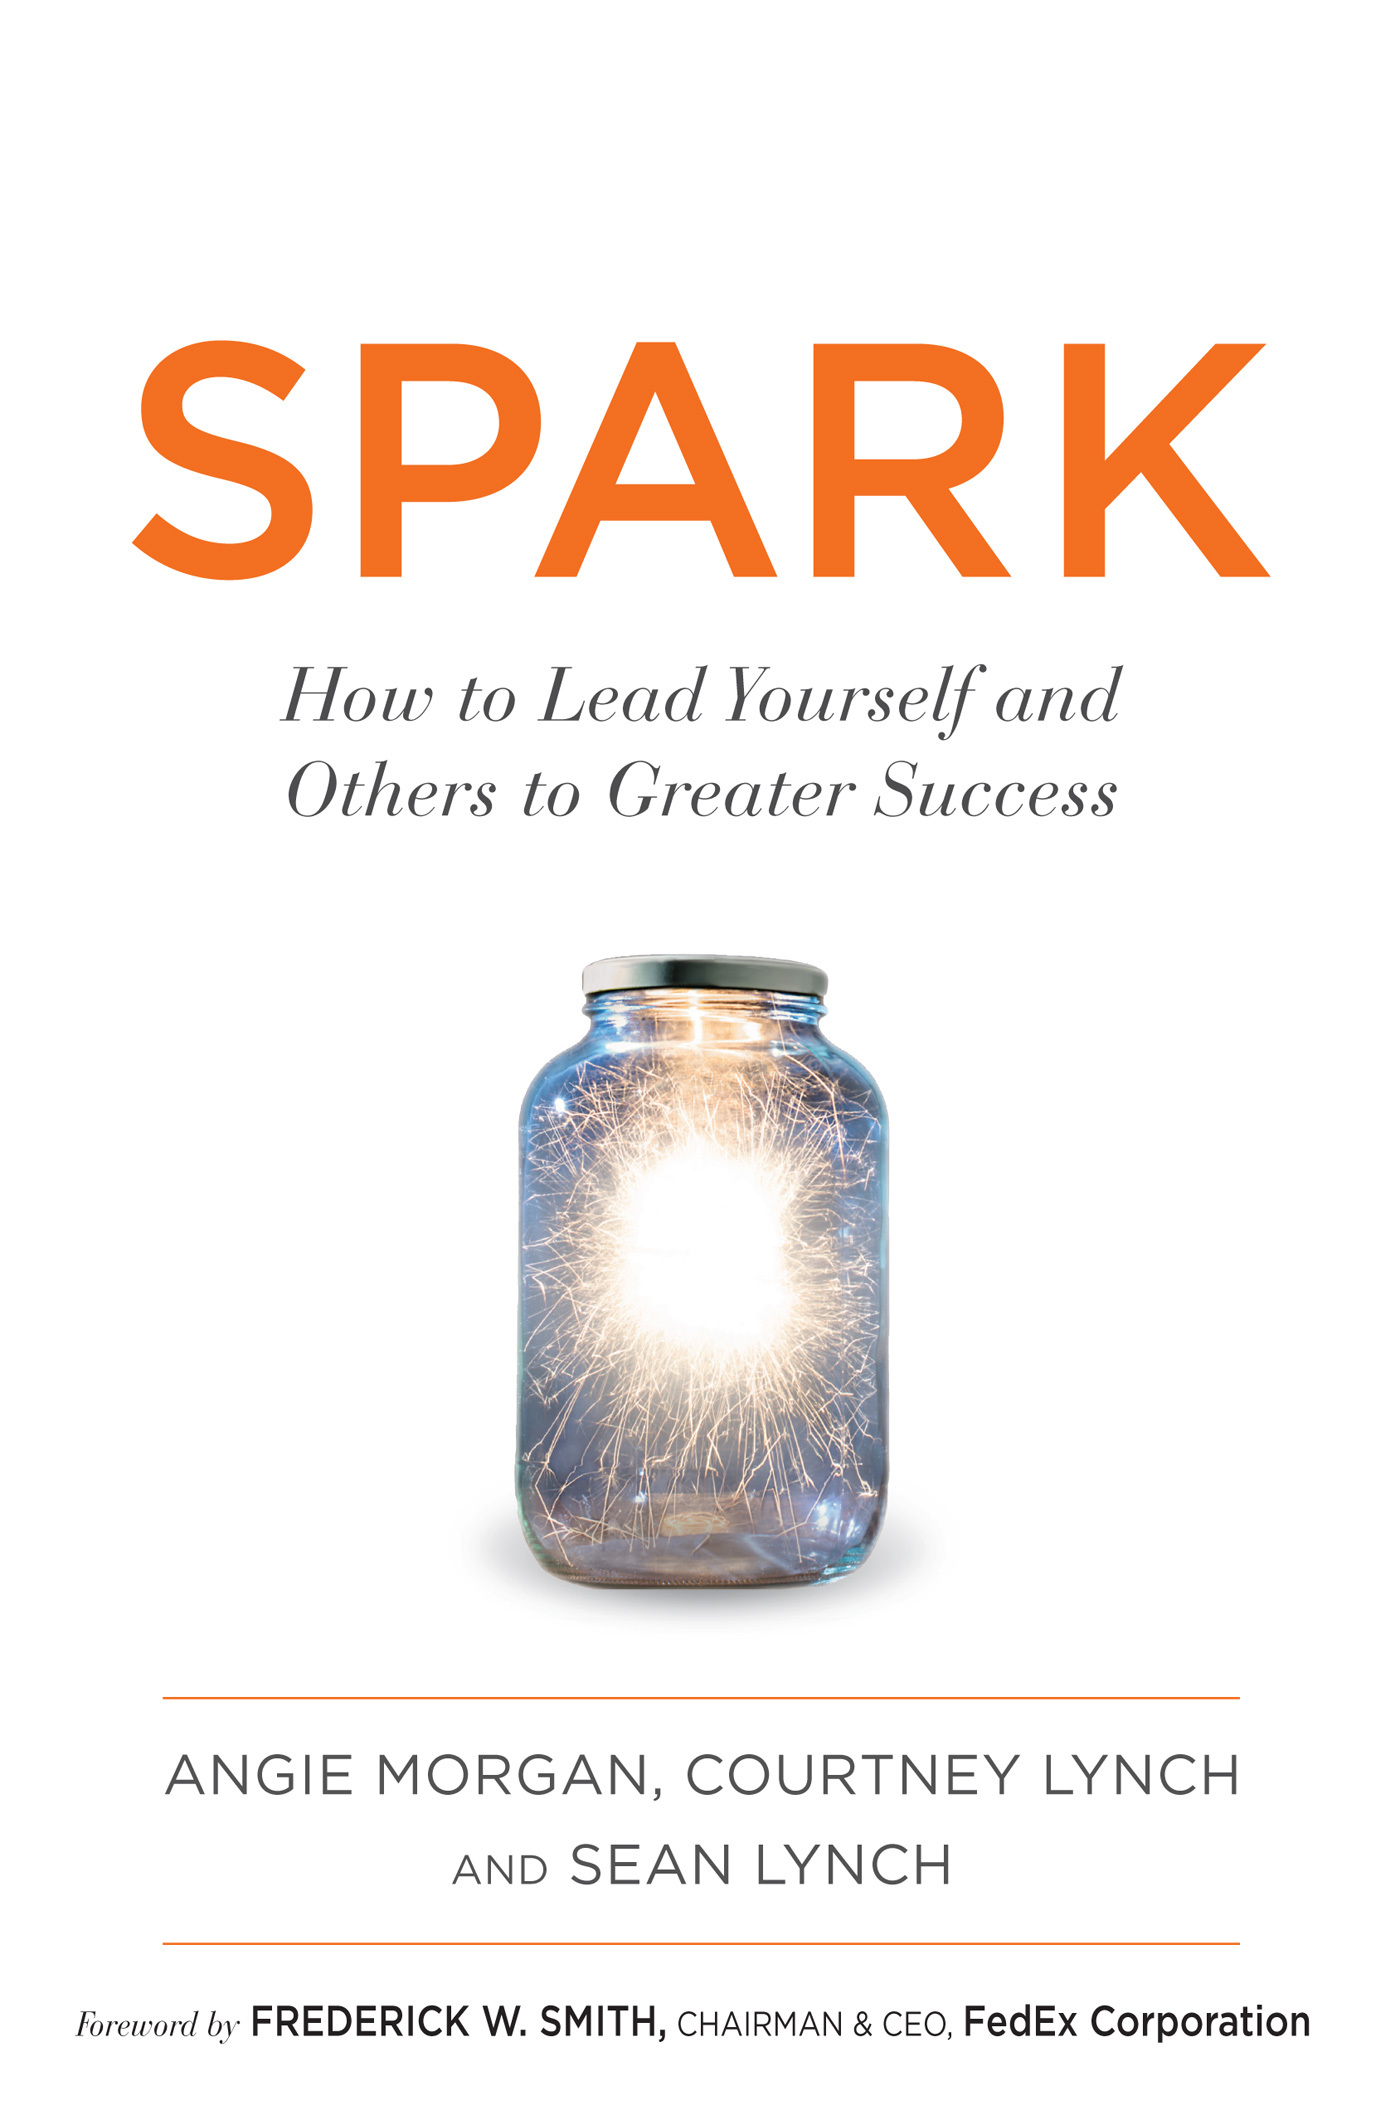 Spark-How-to-Lead-Yourself-and-Others-to-Greater-Success